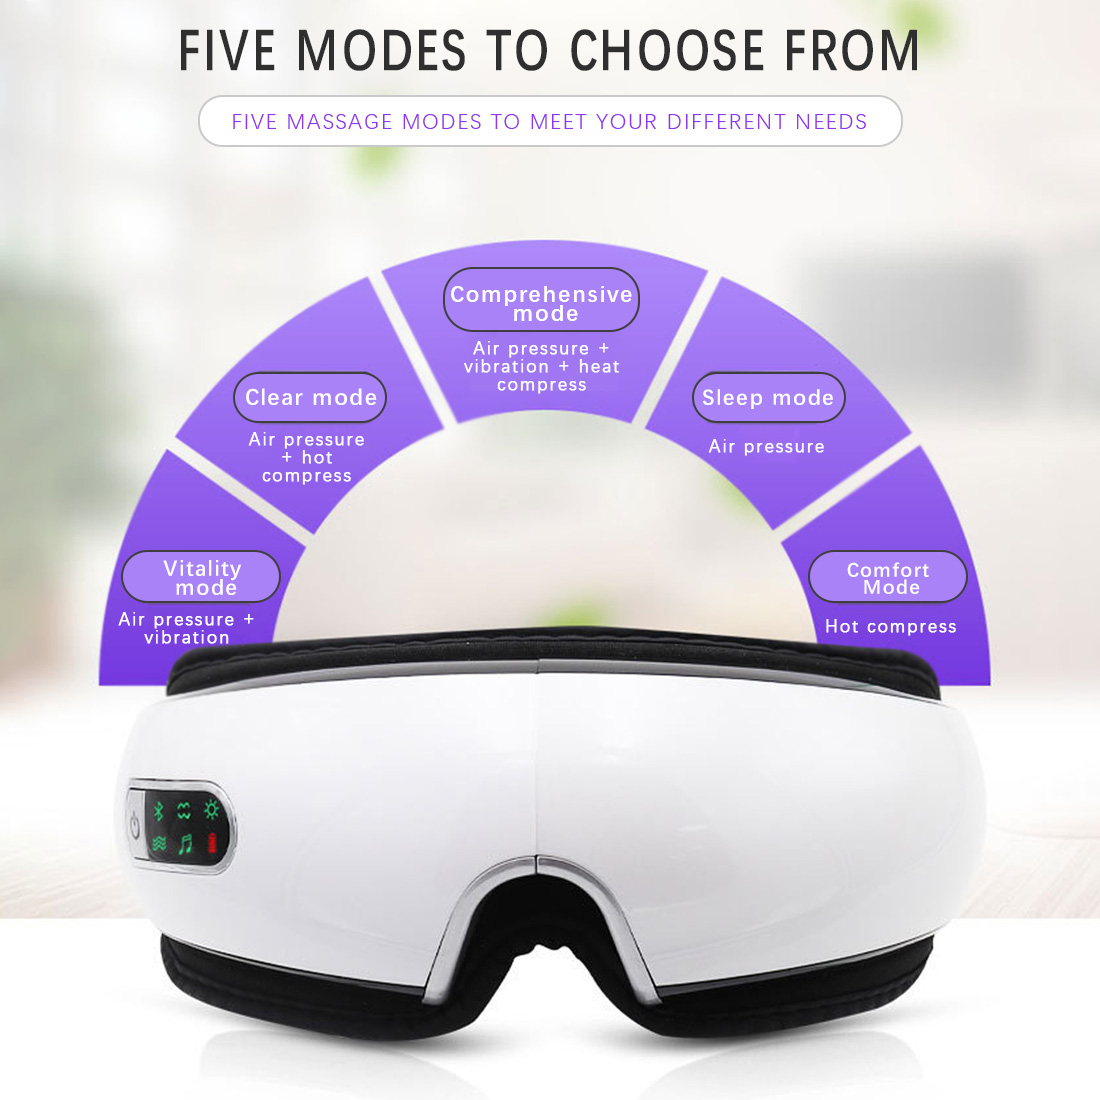 Eye Care Bluetooth Eyes Massager Vibration SPA Electric Music Collapsible Air Pressure Heating Instrument Eye Fatigue Massage